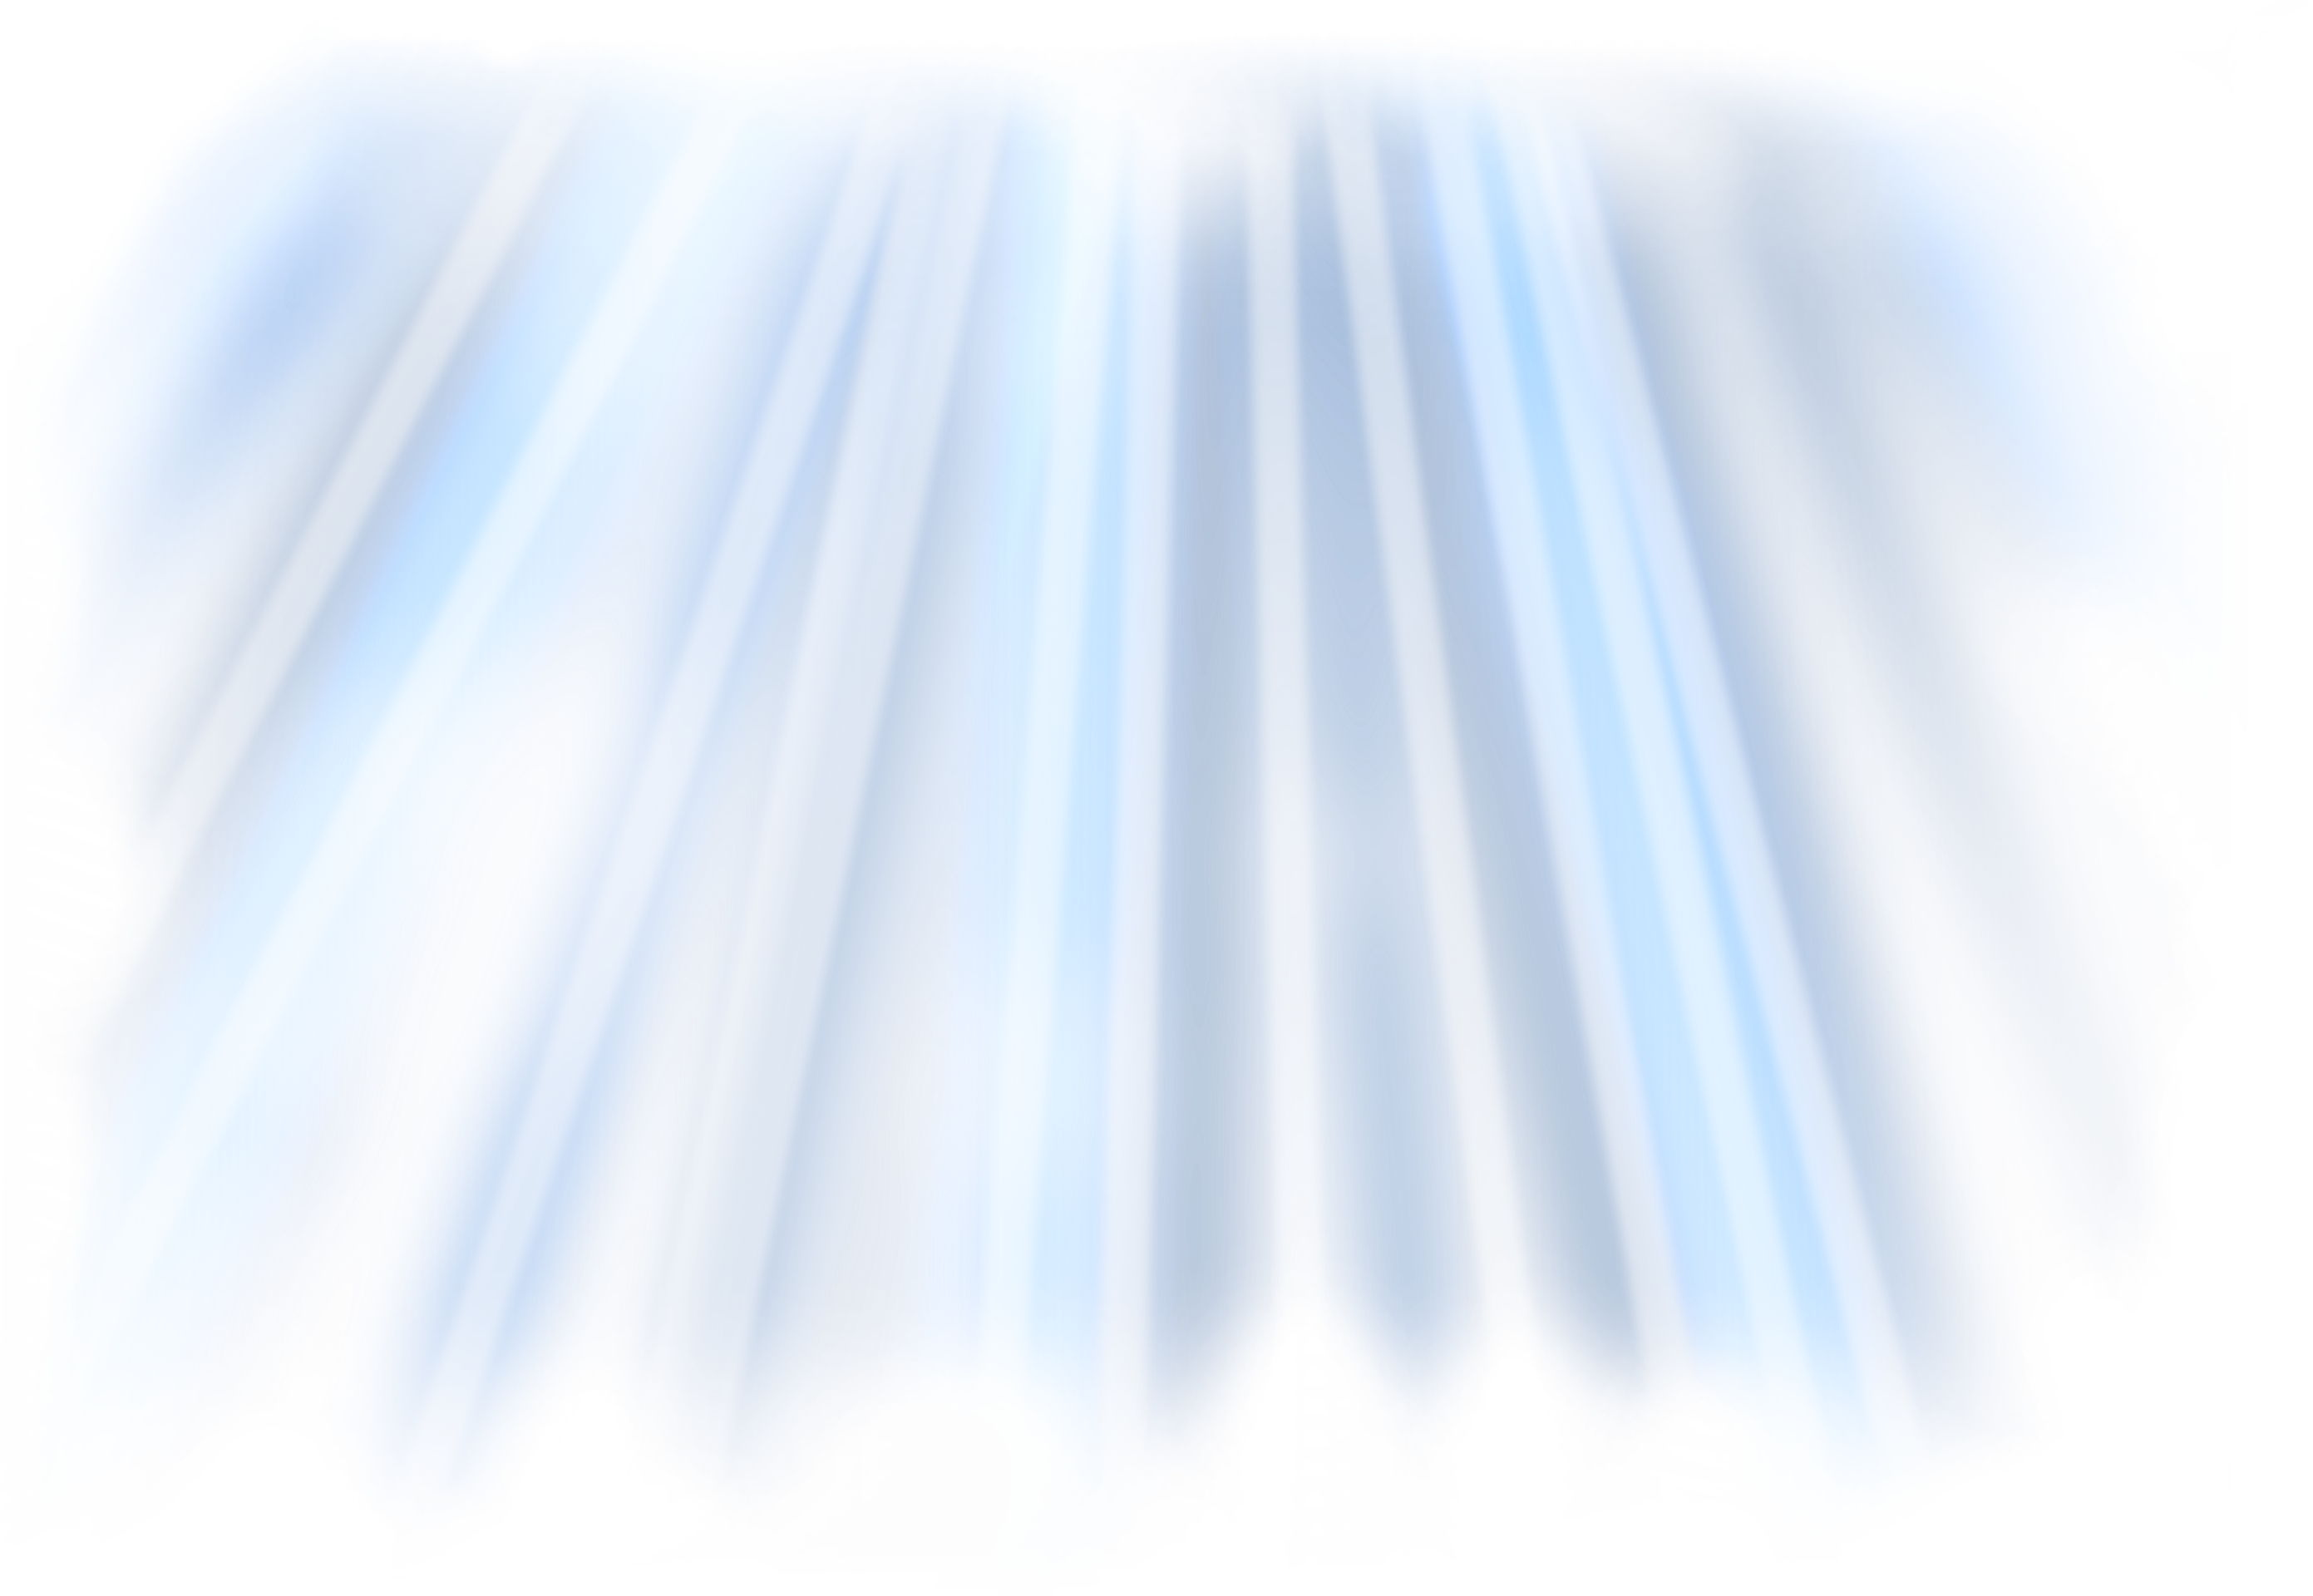 Lights background png. Rays of light transparent